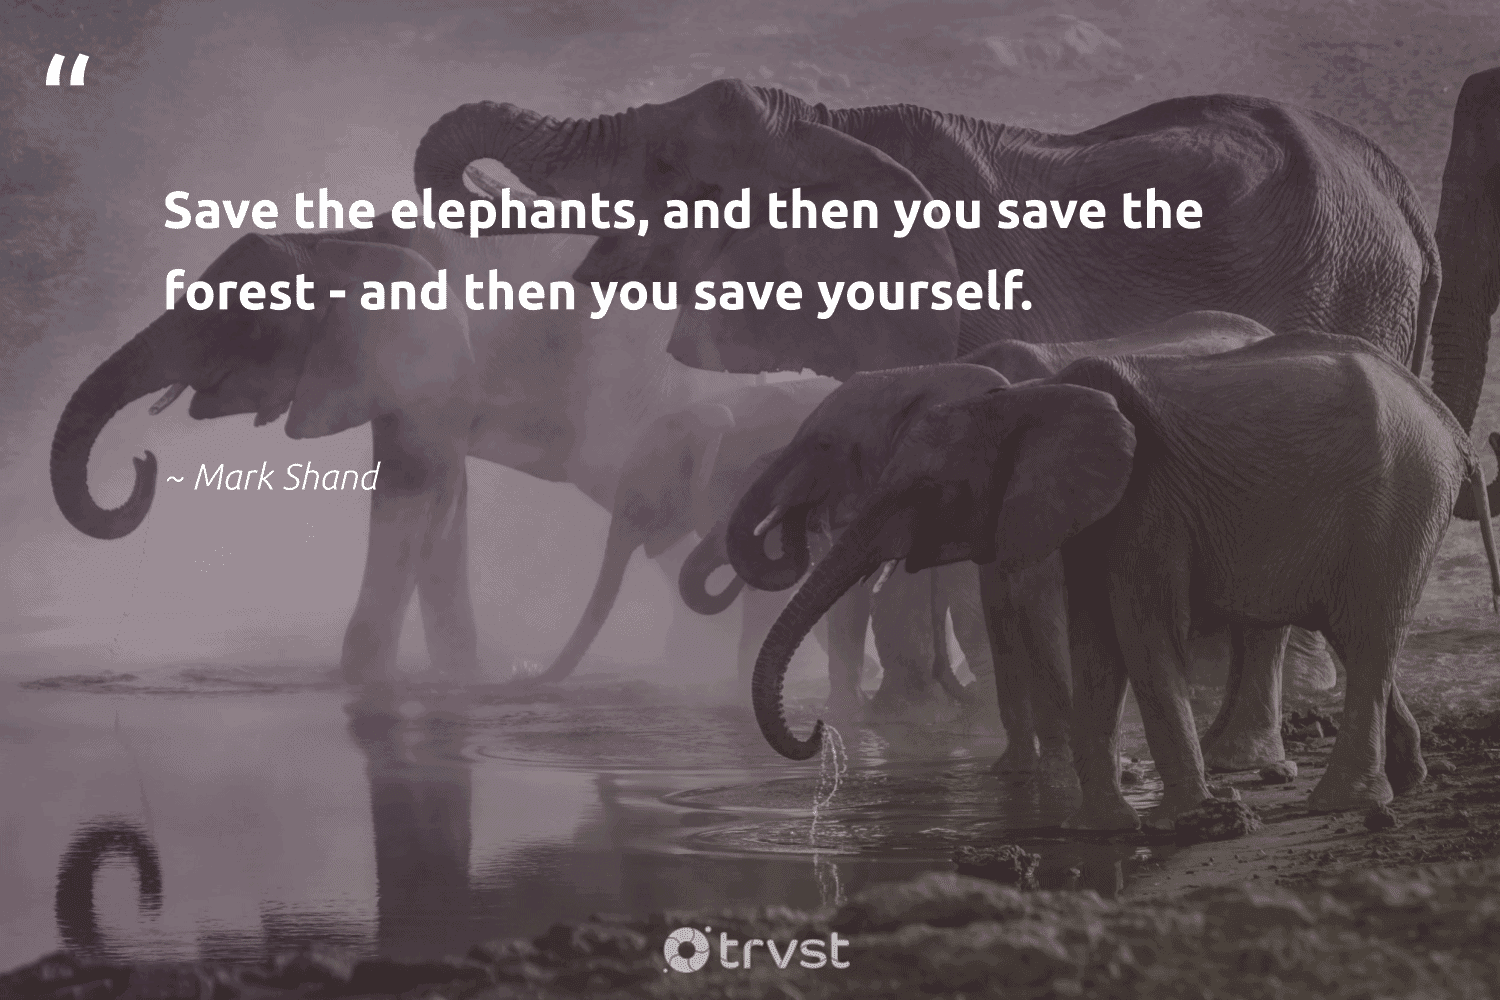 """""""Save the elephants, and then you save the forest - and then you save yourself.""""  - Mark Shand #trvst #quotes #forest #elephants #savetheelephants #deforestation #explore #earth #bethechange #arborarmy #conservation #climatechange"""